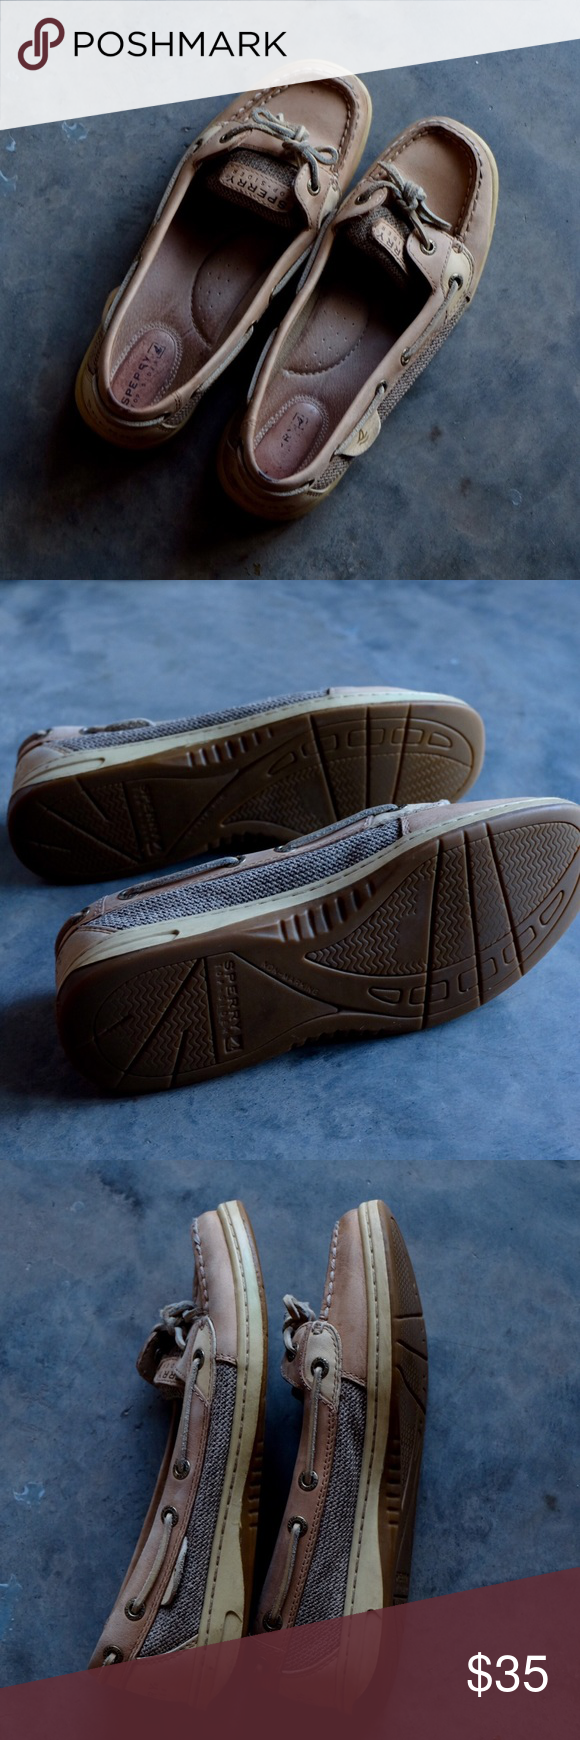 Sperry Top Sider - Firefish boat shoe Worn but in great condition - no longer wear enough to justify amount I purchased for!  No major flaws. Sperry name worn out on inside of shoe/footbed.  Please make an offer!  Sorry no trades. Sperry Top-Sider Shoes